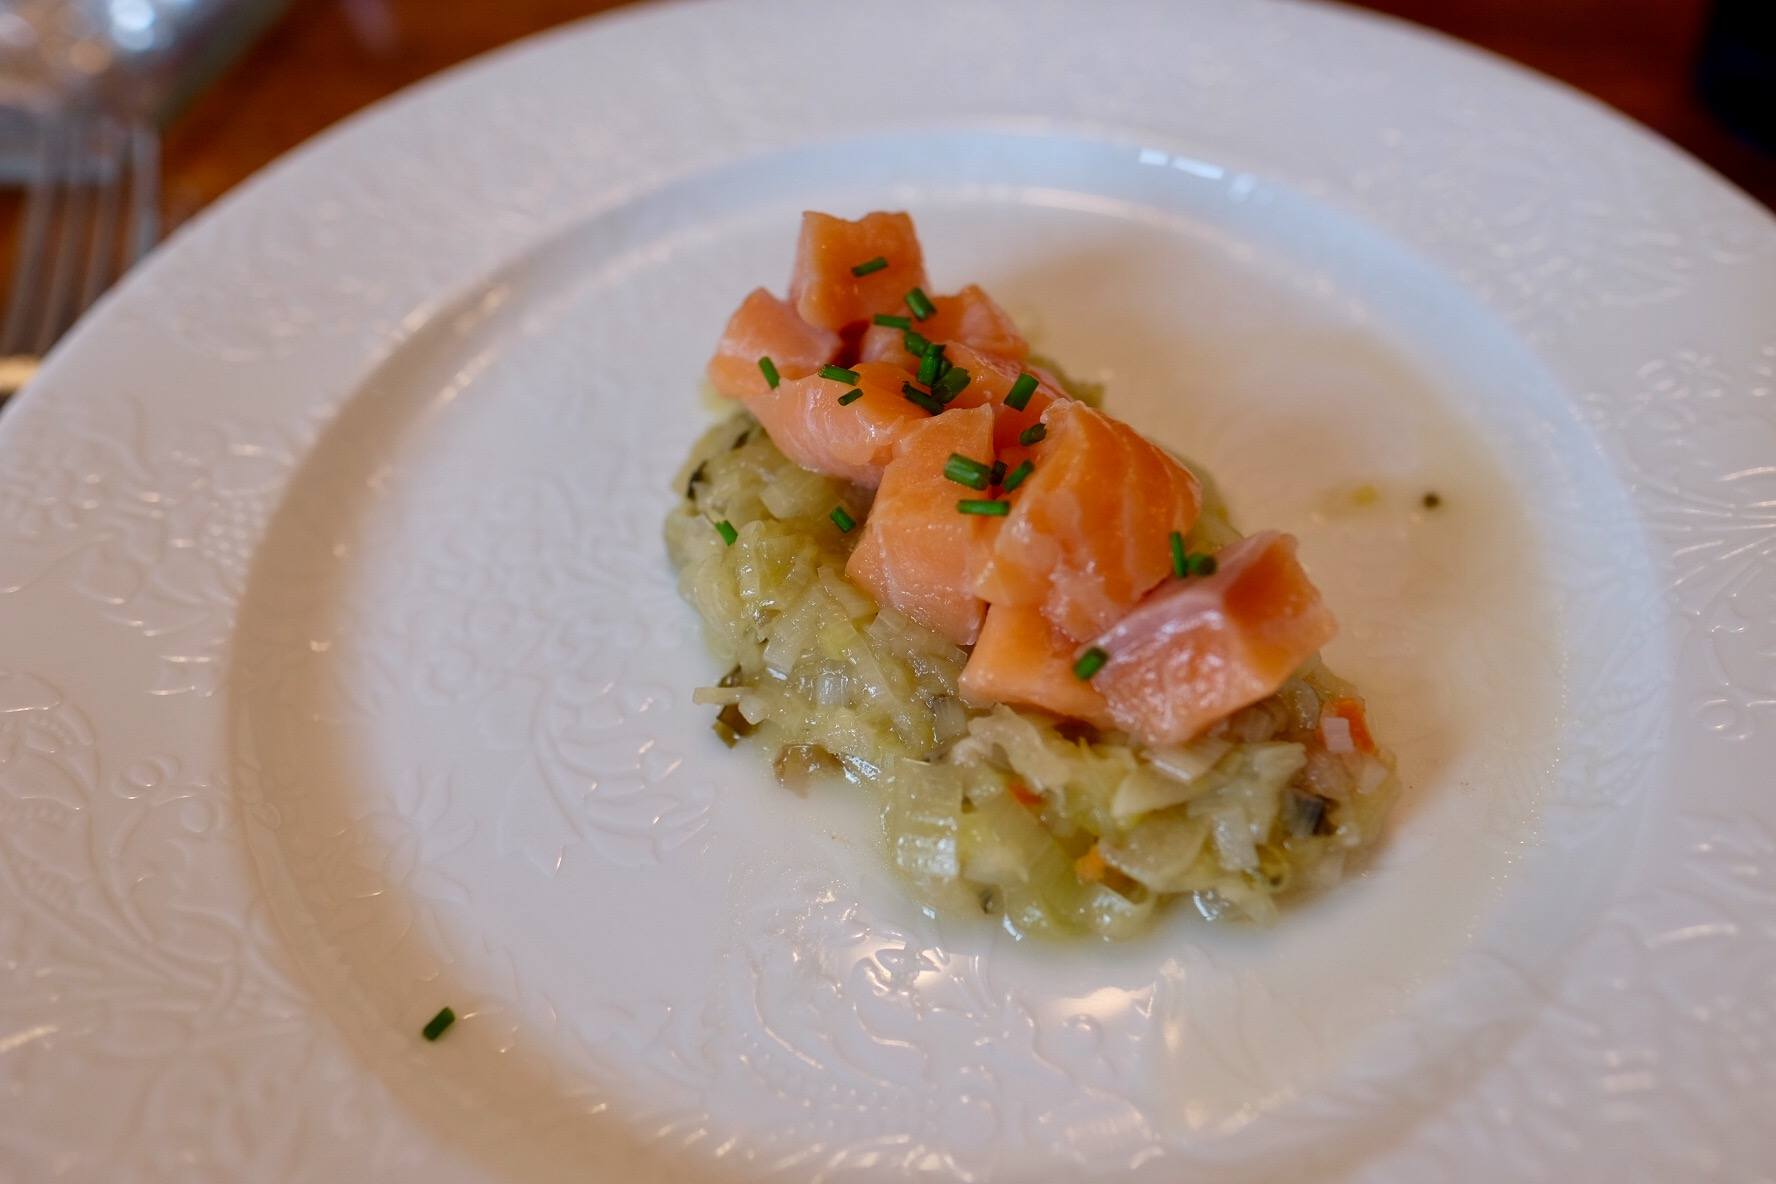 Smoked salmon and leeks